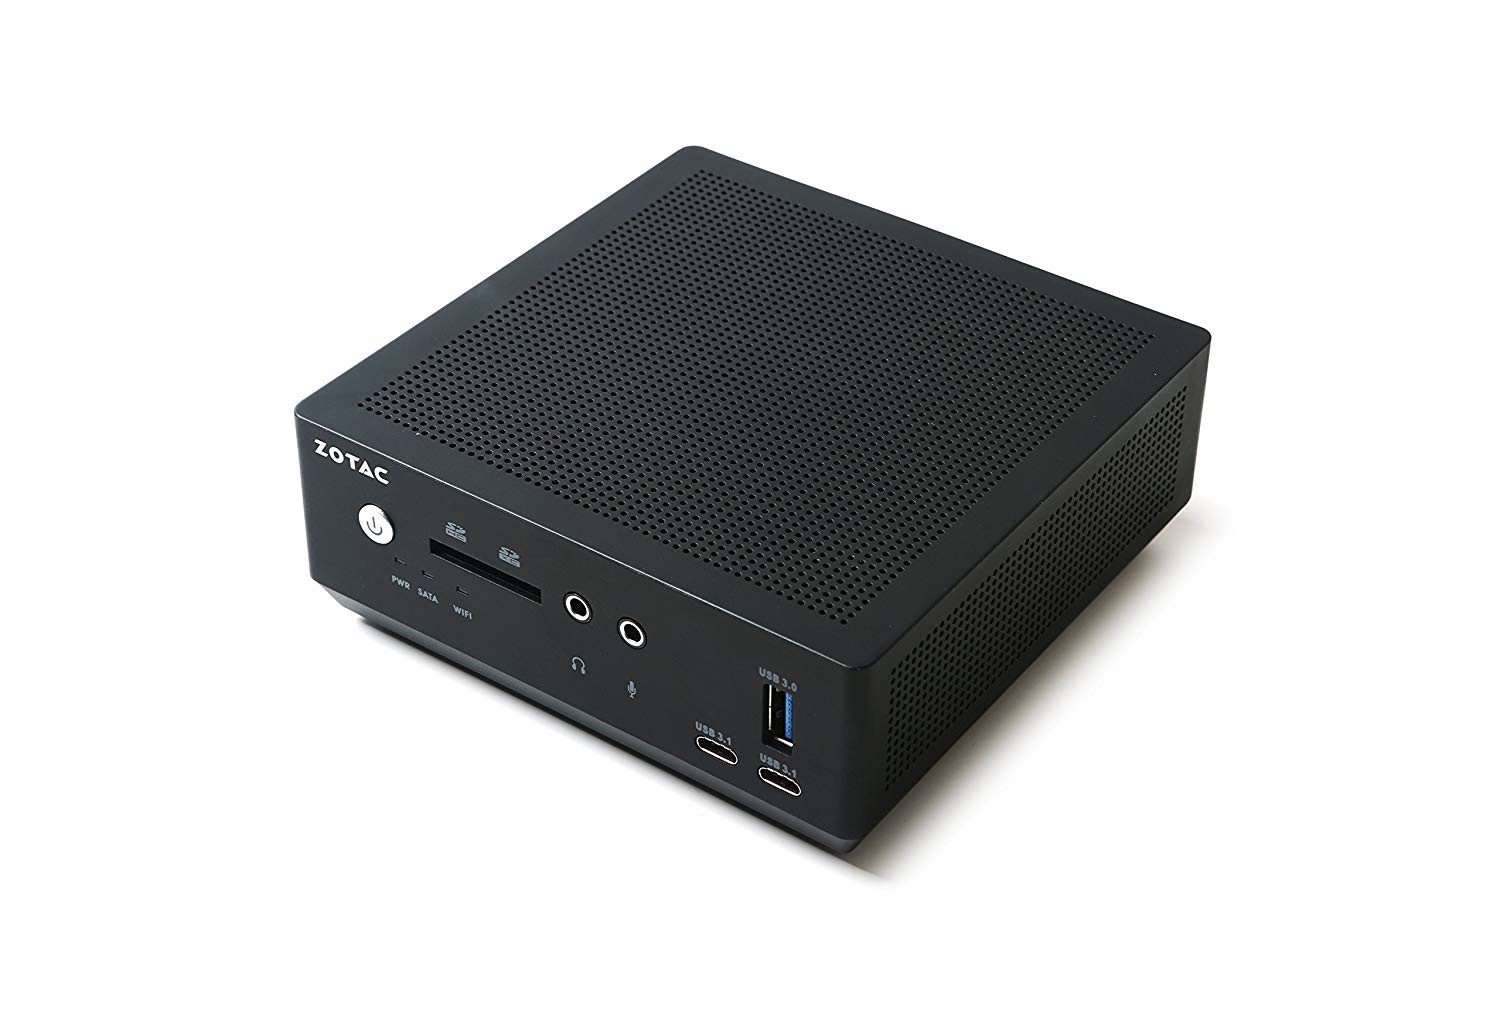 ZOTAC ZBOX M Series MI527 Nano Mini PC